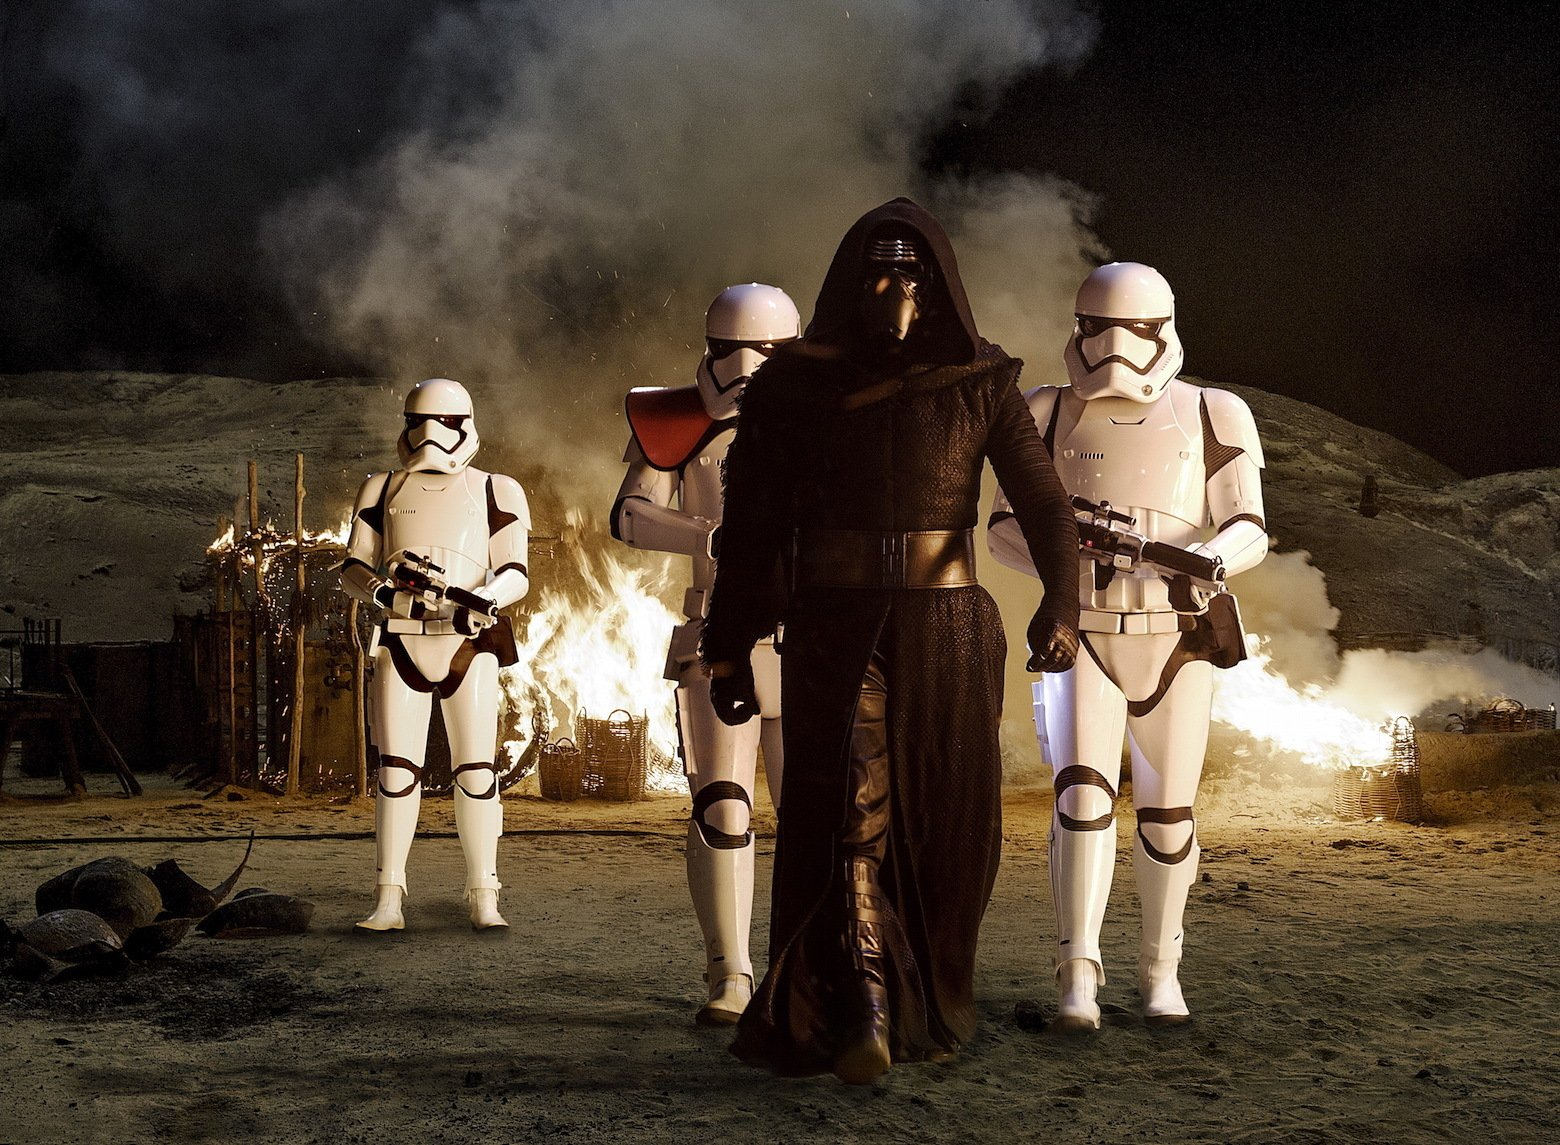 Star Wars VII The Force Awakens 12 - Kylo Ren and Stormtroopers